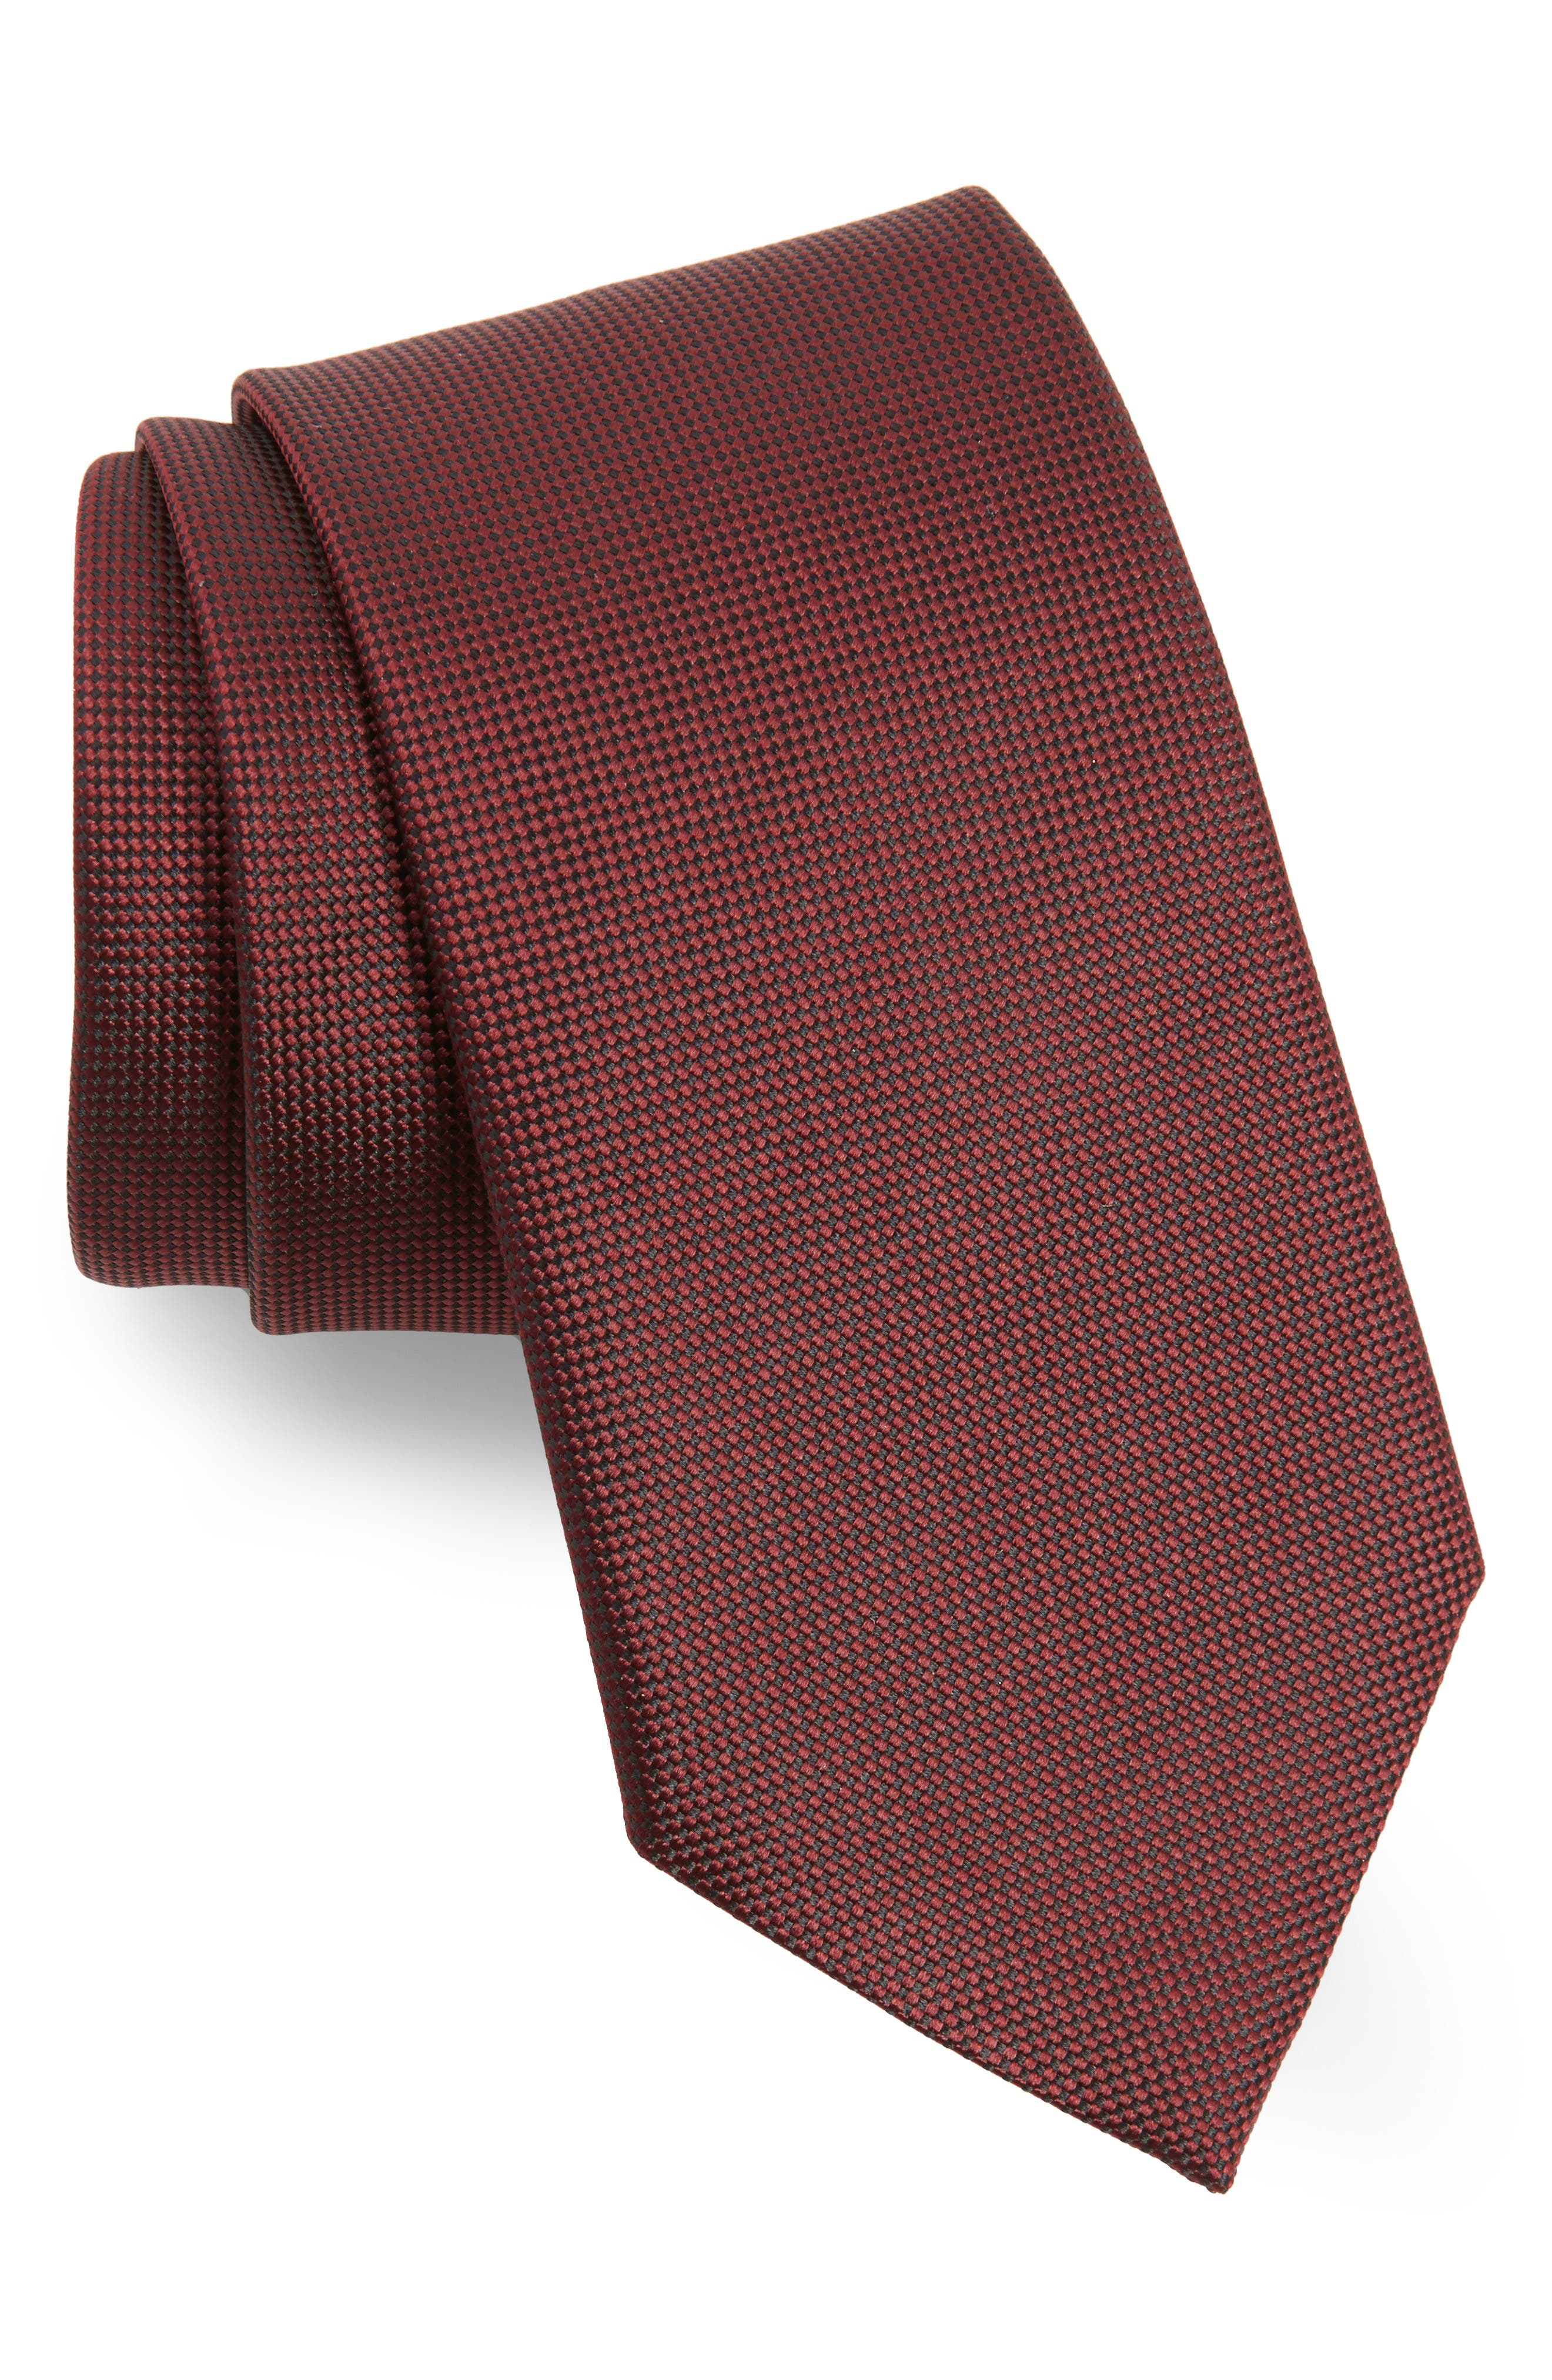 Solid Silk Tie,                             Main thumbnail 8, color,